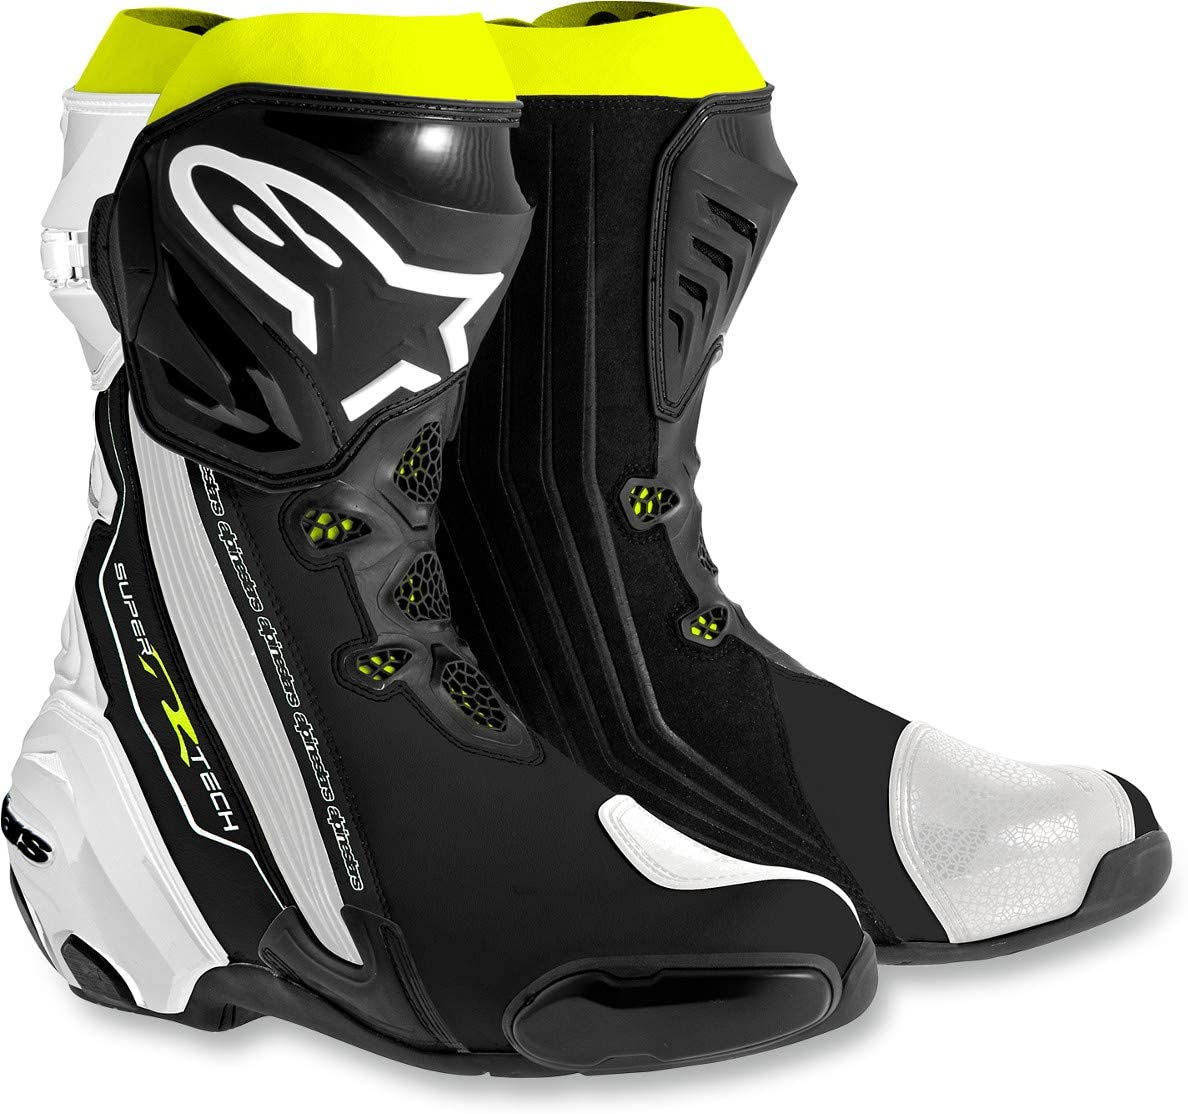 Alpinestars Men's 2220015-158-45 Boots Black/White/Yellow Size 45